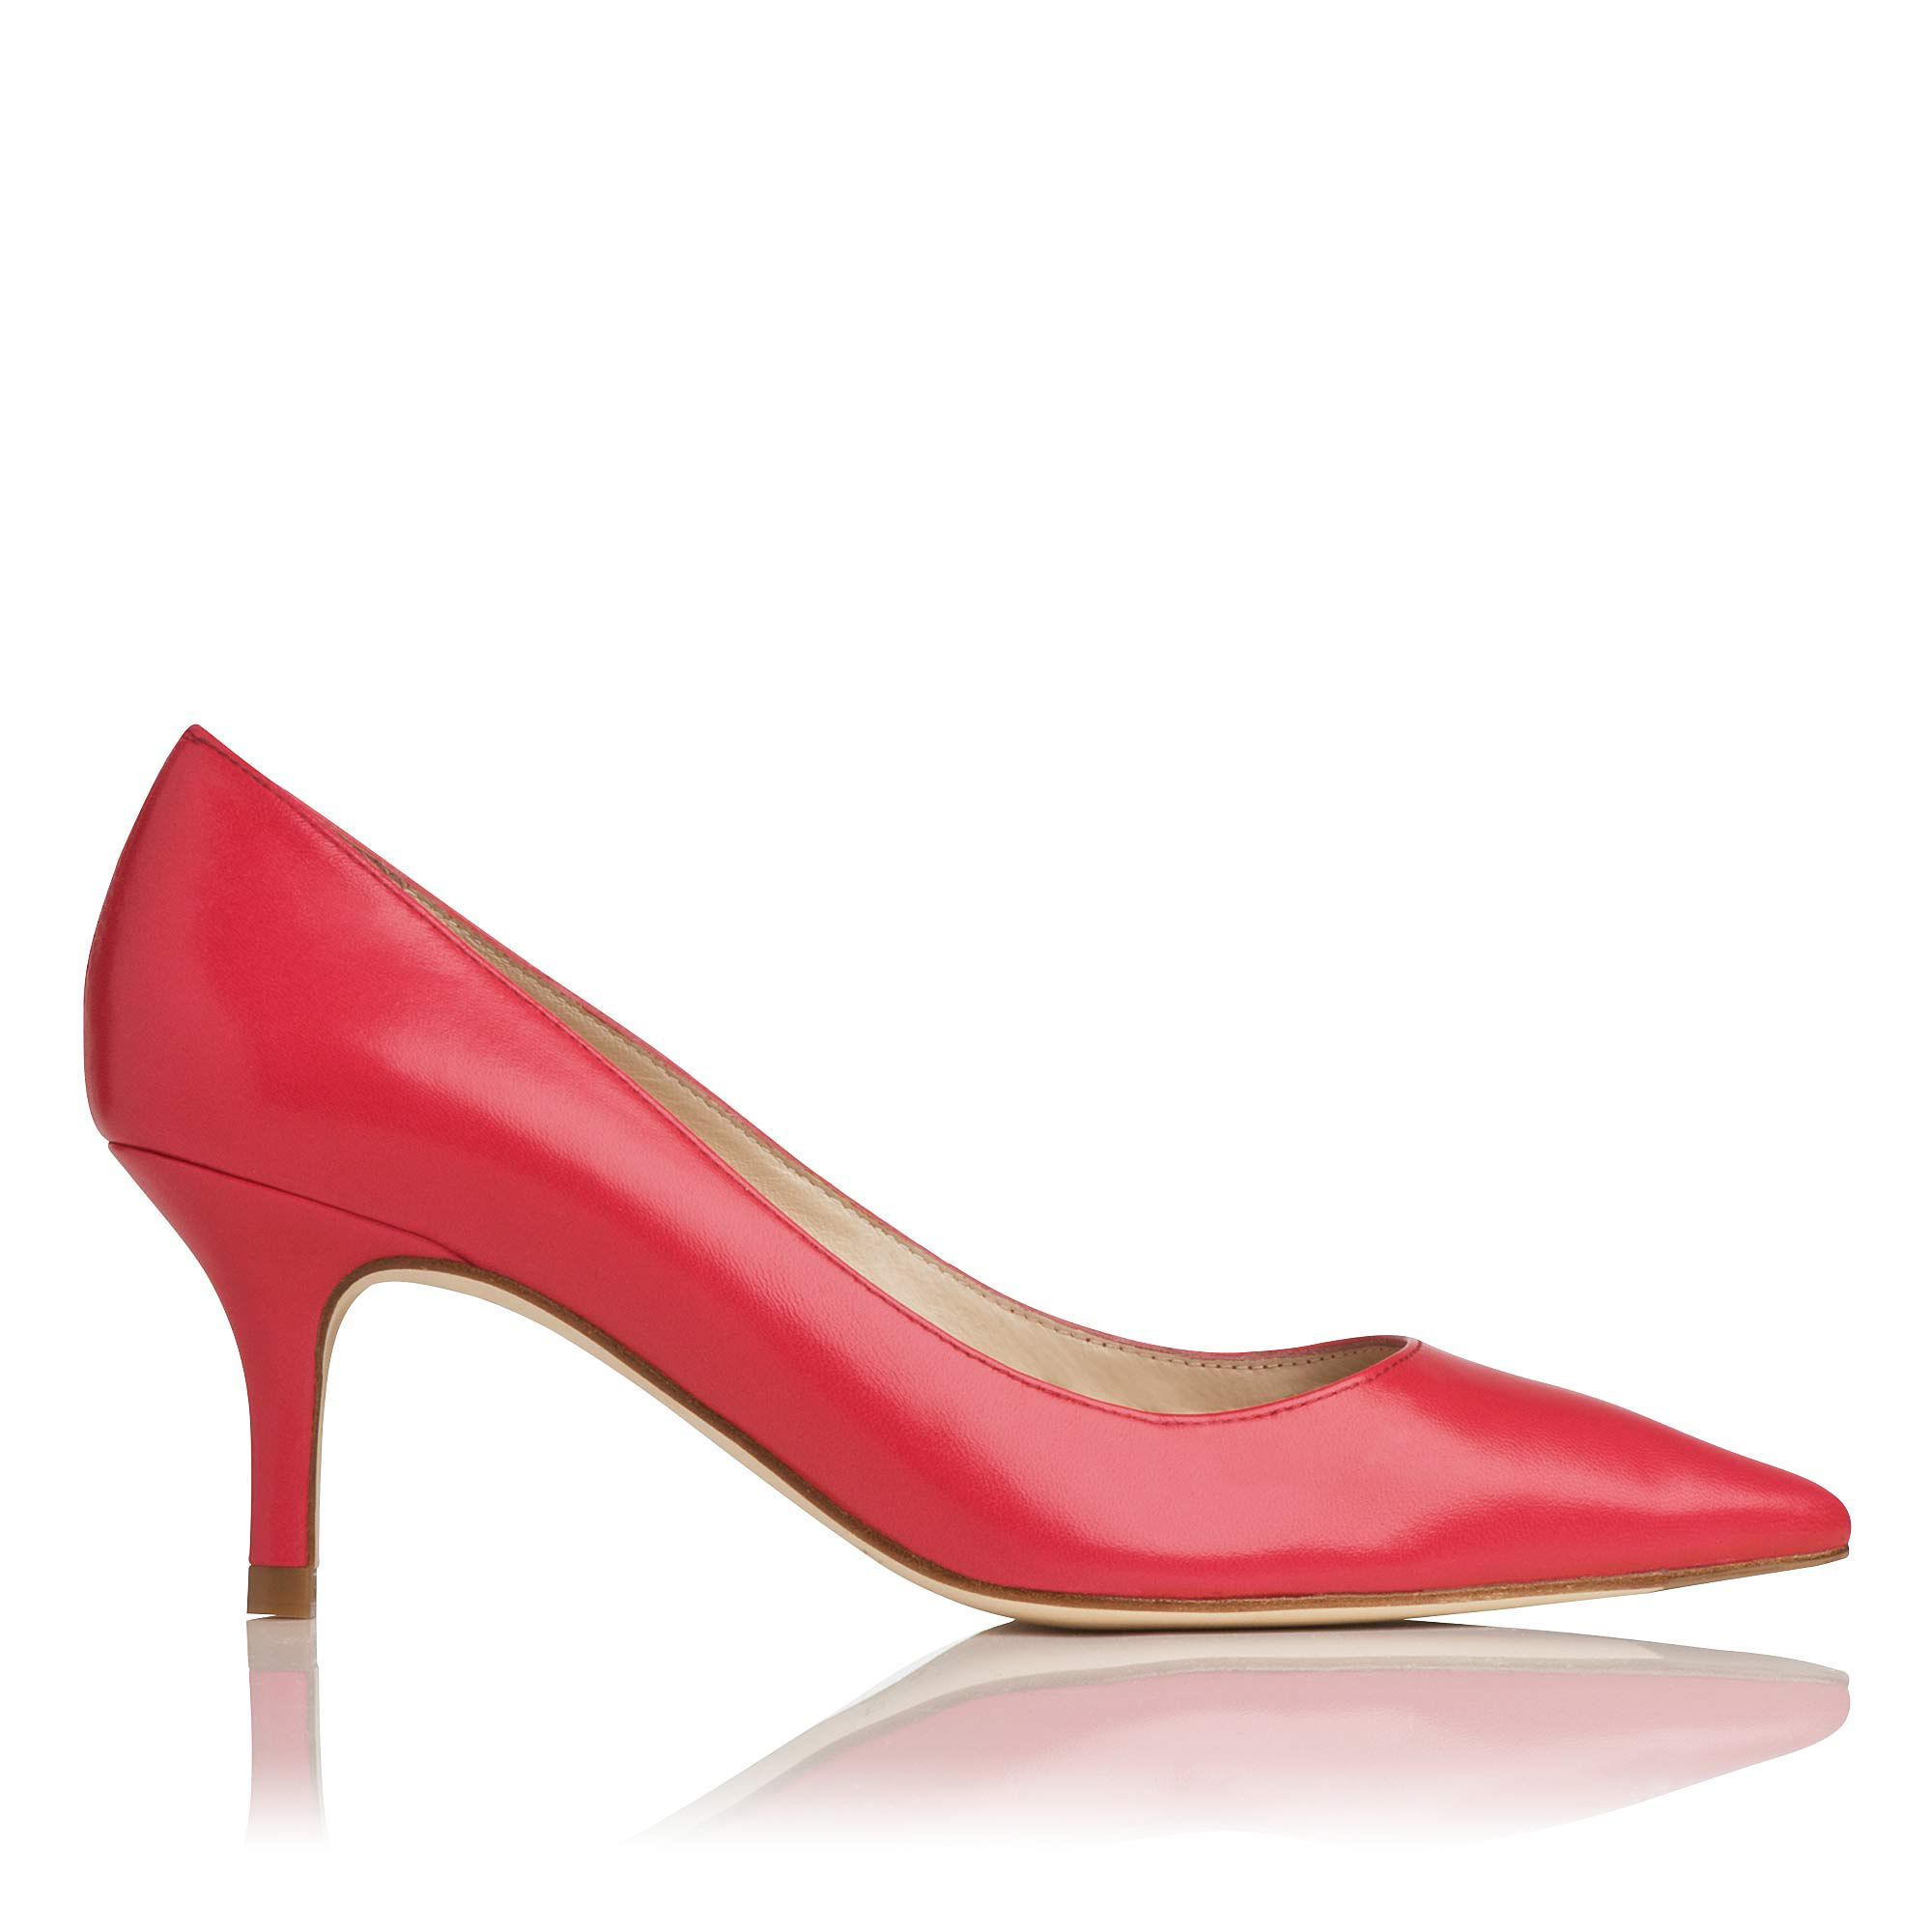 Florisa single sole point sourt shoes